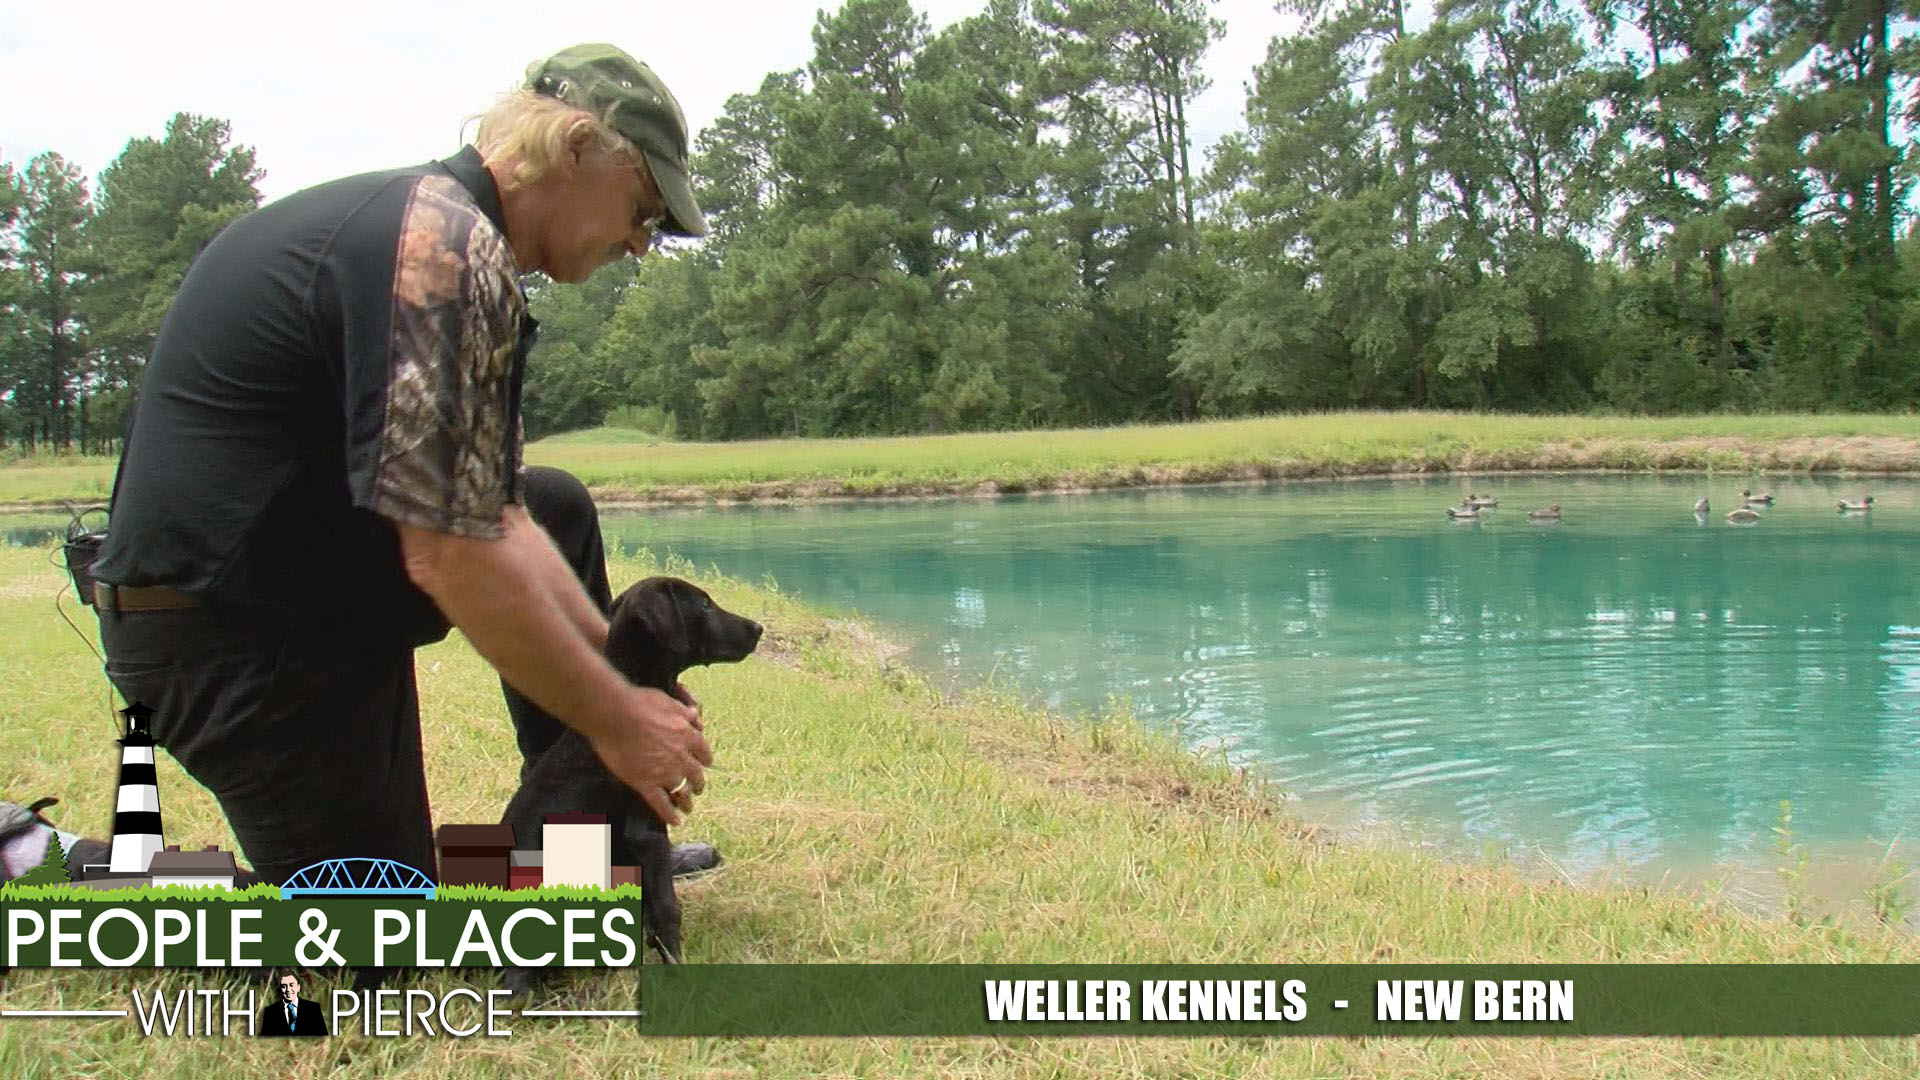 weller kennels new bern PPP for web_462984